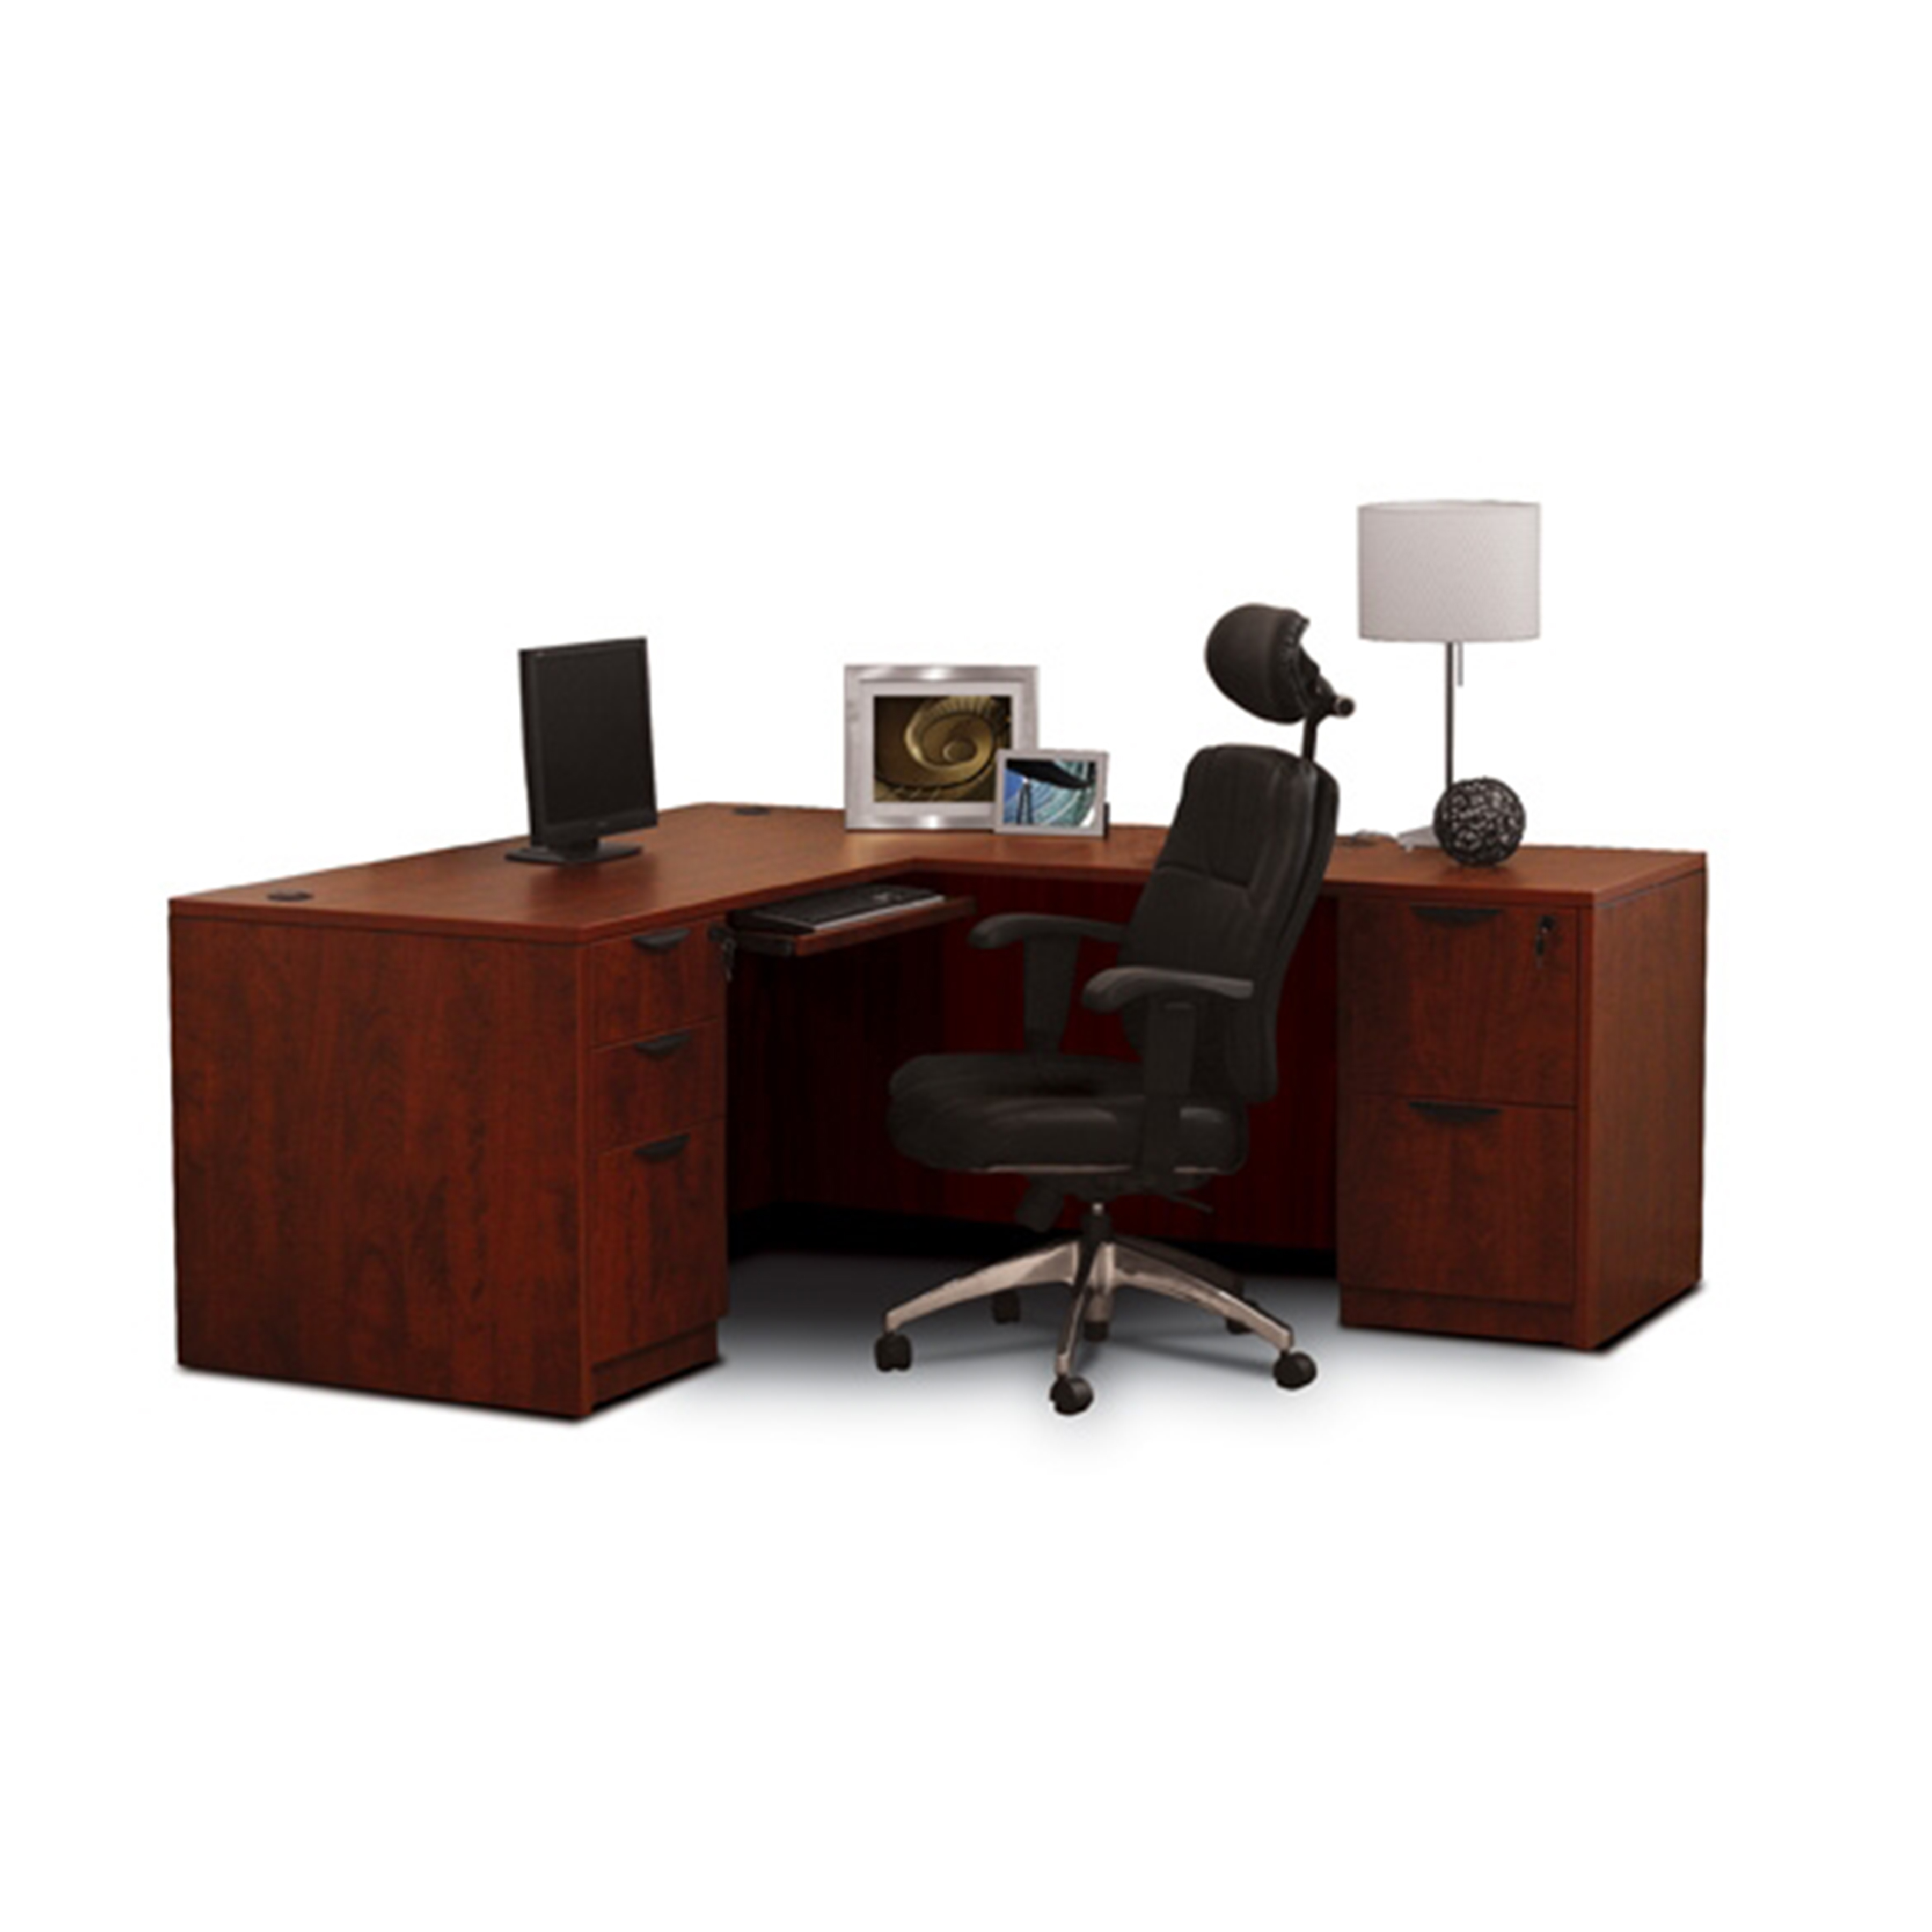 Otg Laminate L Shaped Desk With Drawers